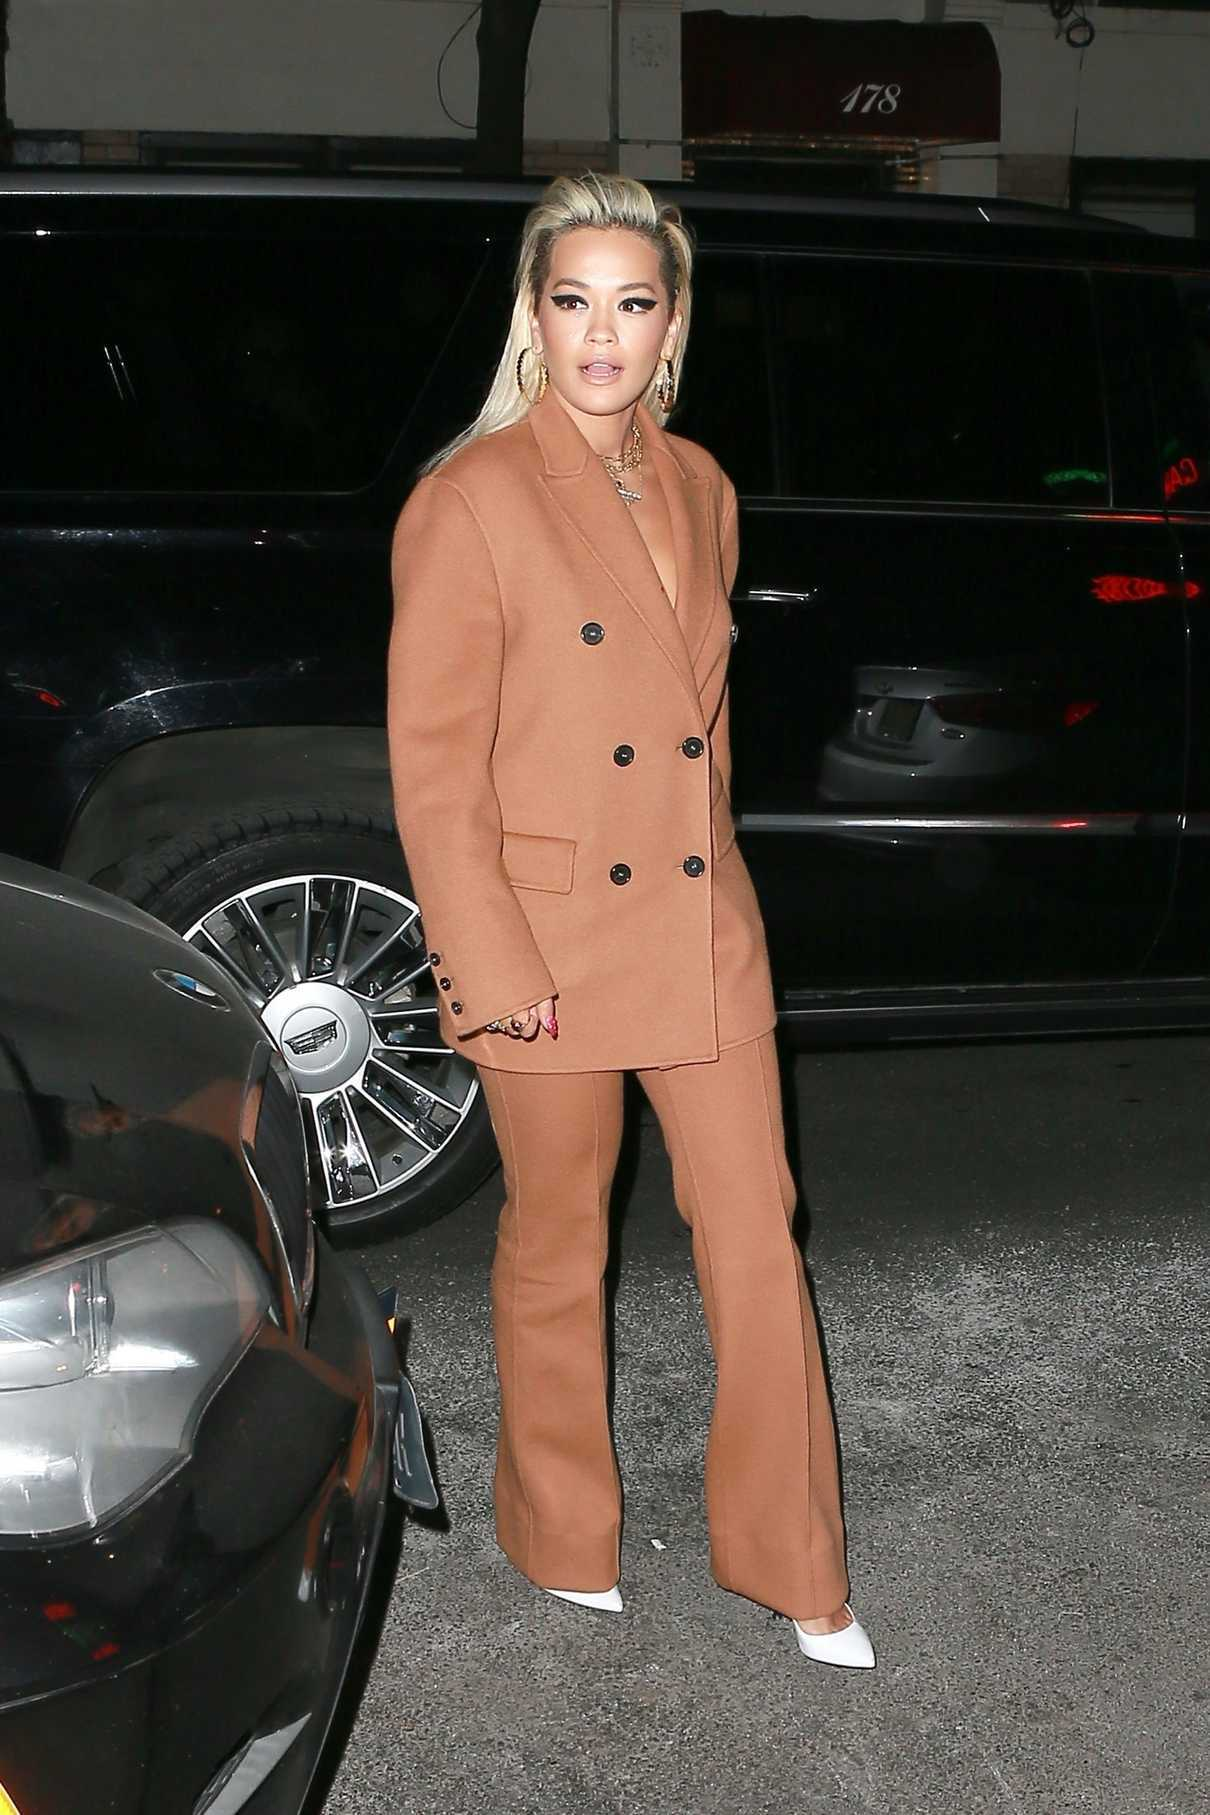 Rita Ora in a Beige Suit